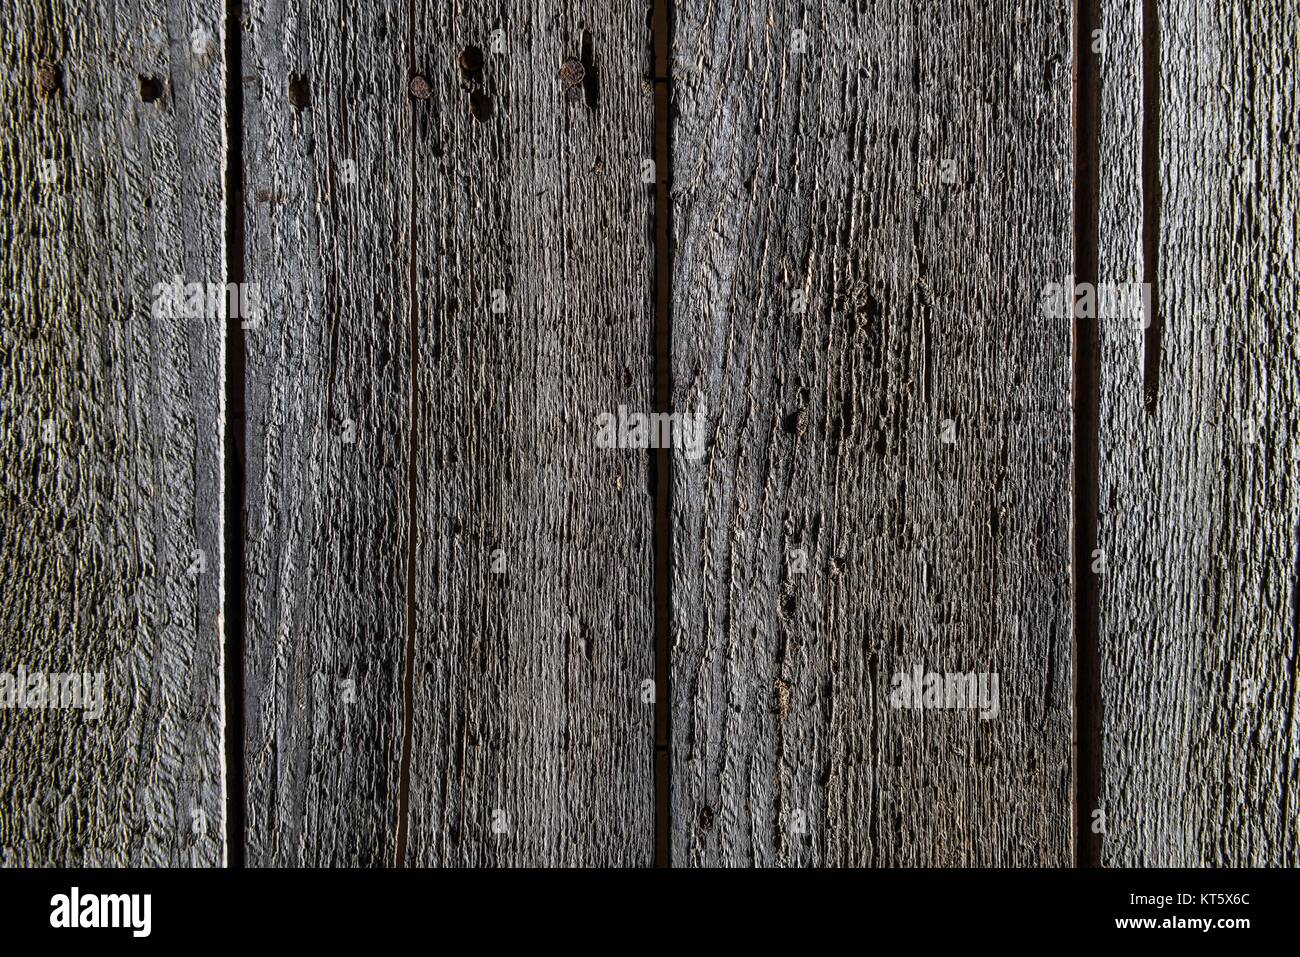 full frame of dark wooden background with vertical planks - Stock Image